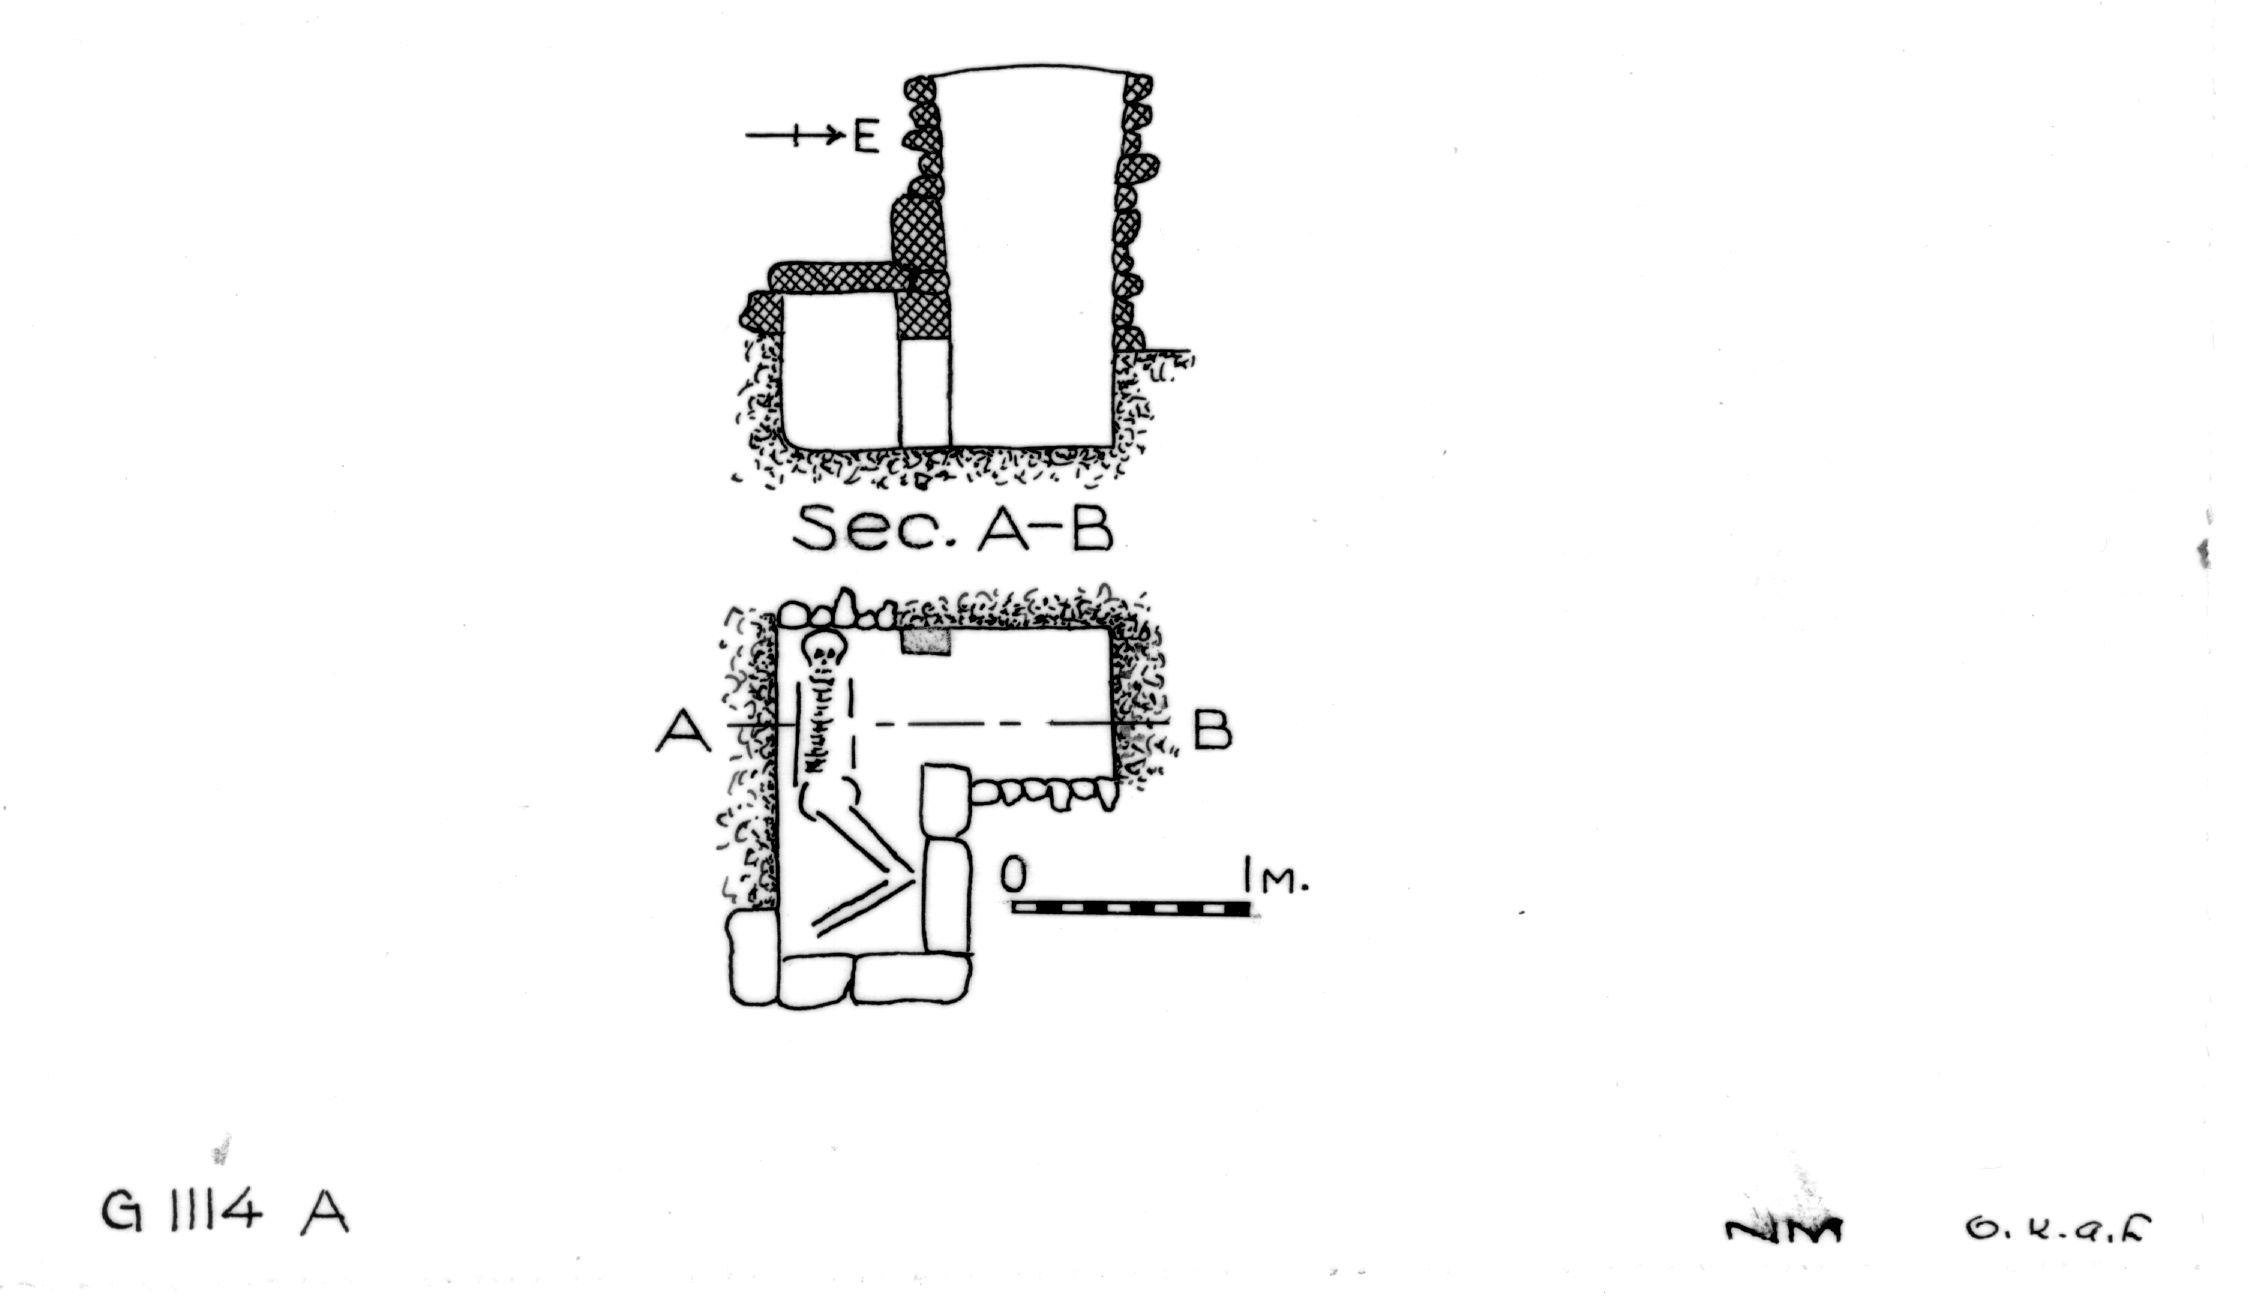 Maps and plans: G 1114, Shaft A